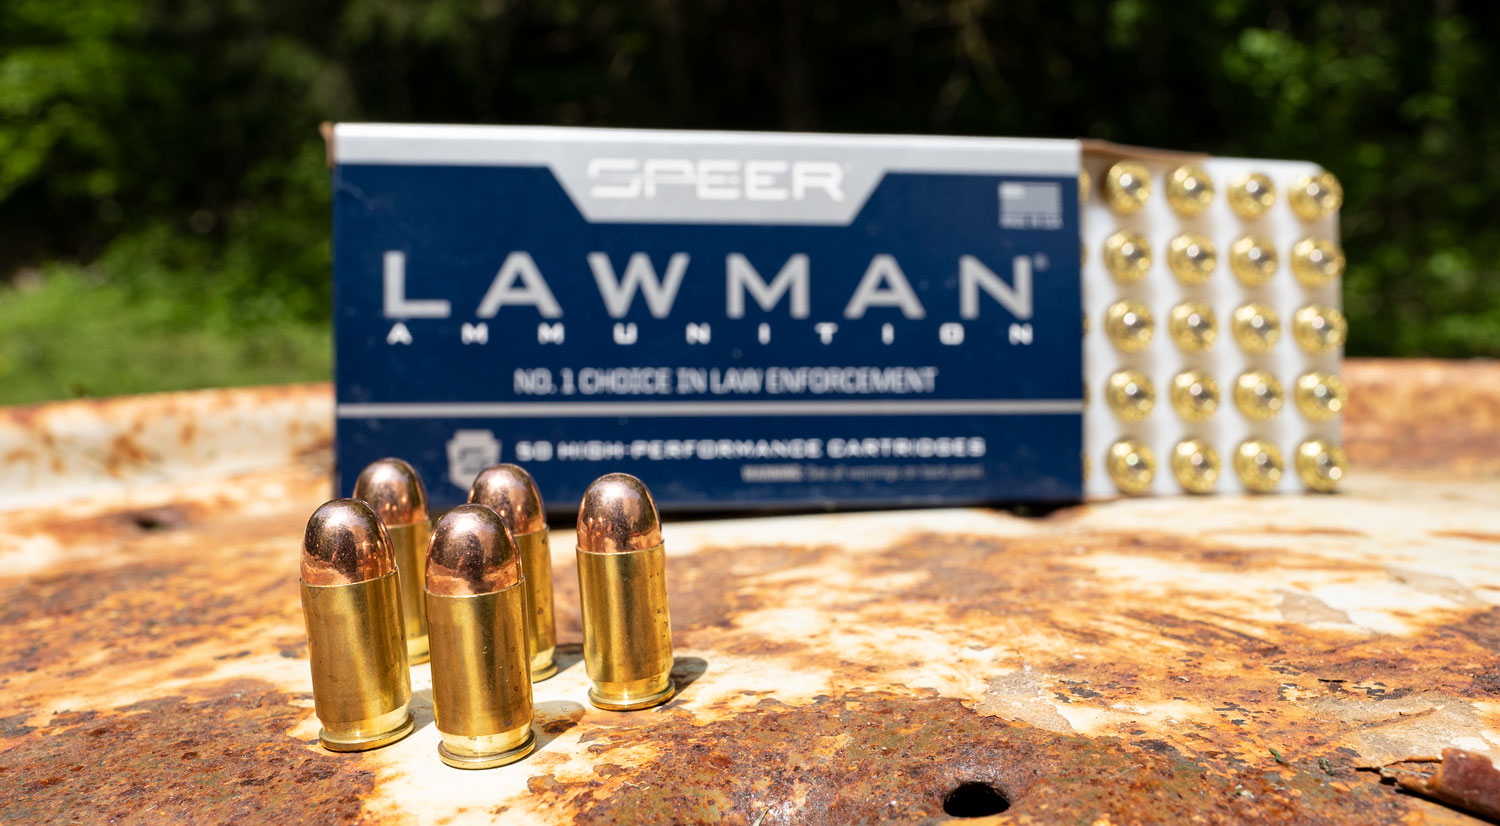 Speer lawman ammunition on a table at the shooting range